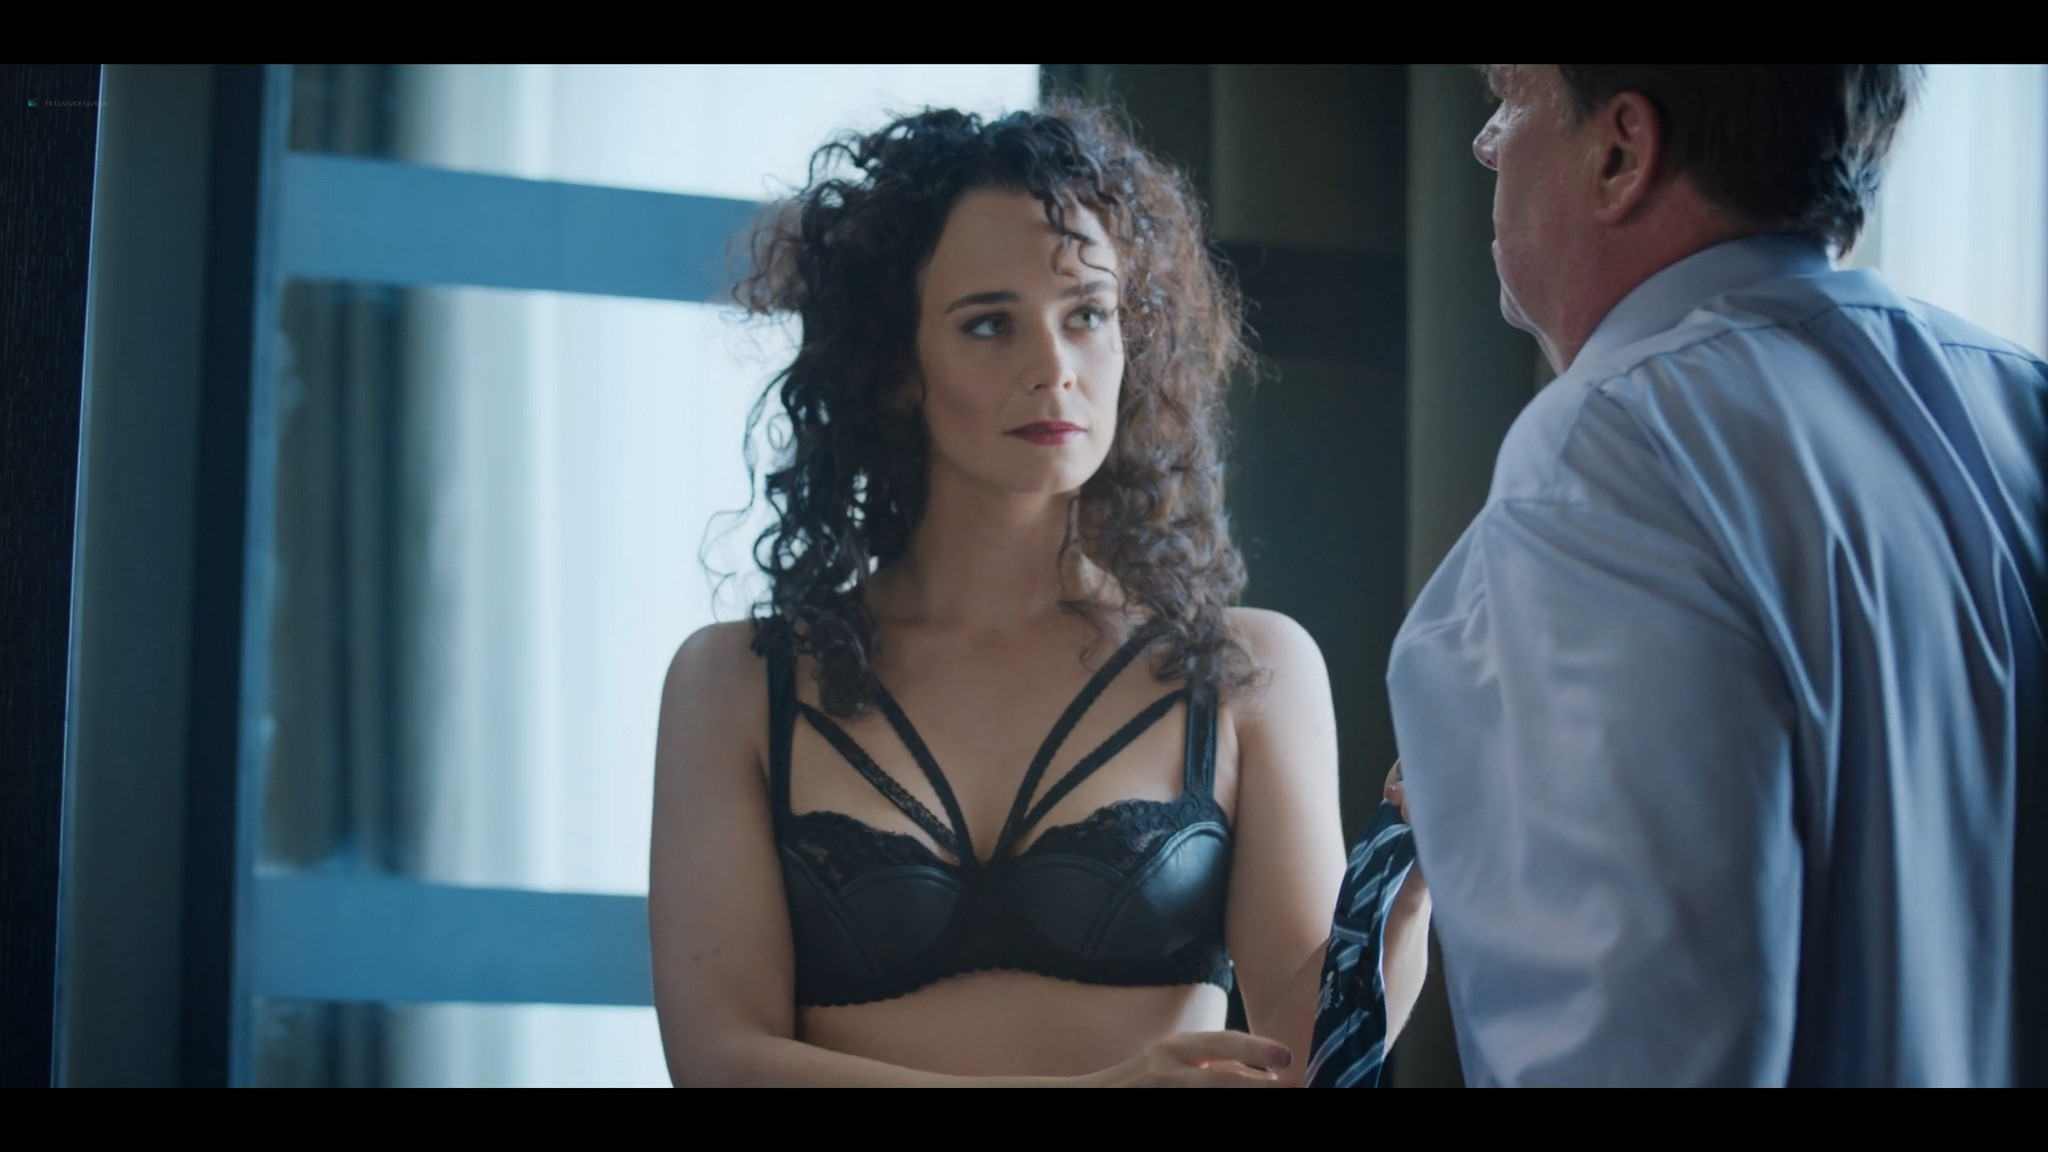 Daphne Wellens nude sex Karina Smulders sex - Women of the Nigh (2019) HD 1080p Web (5)